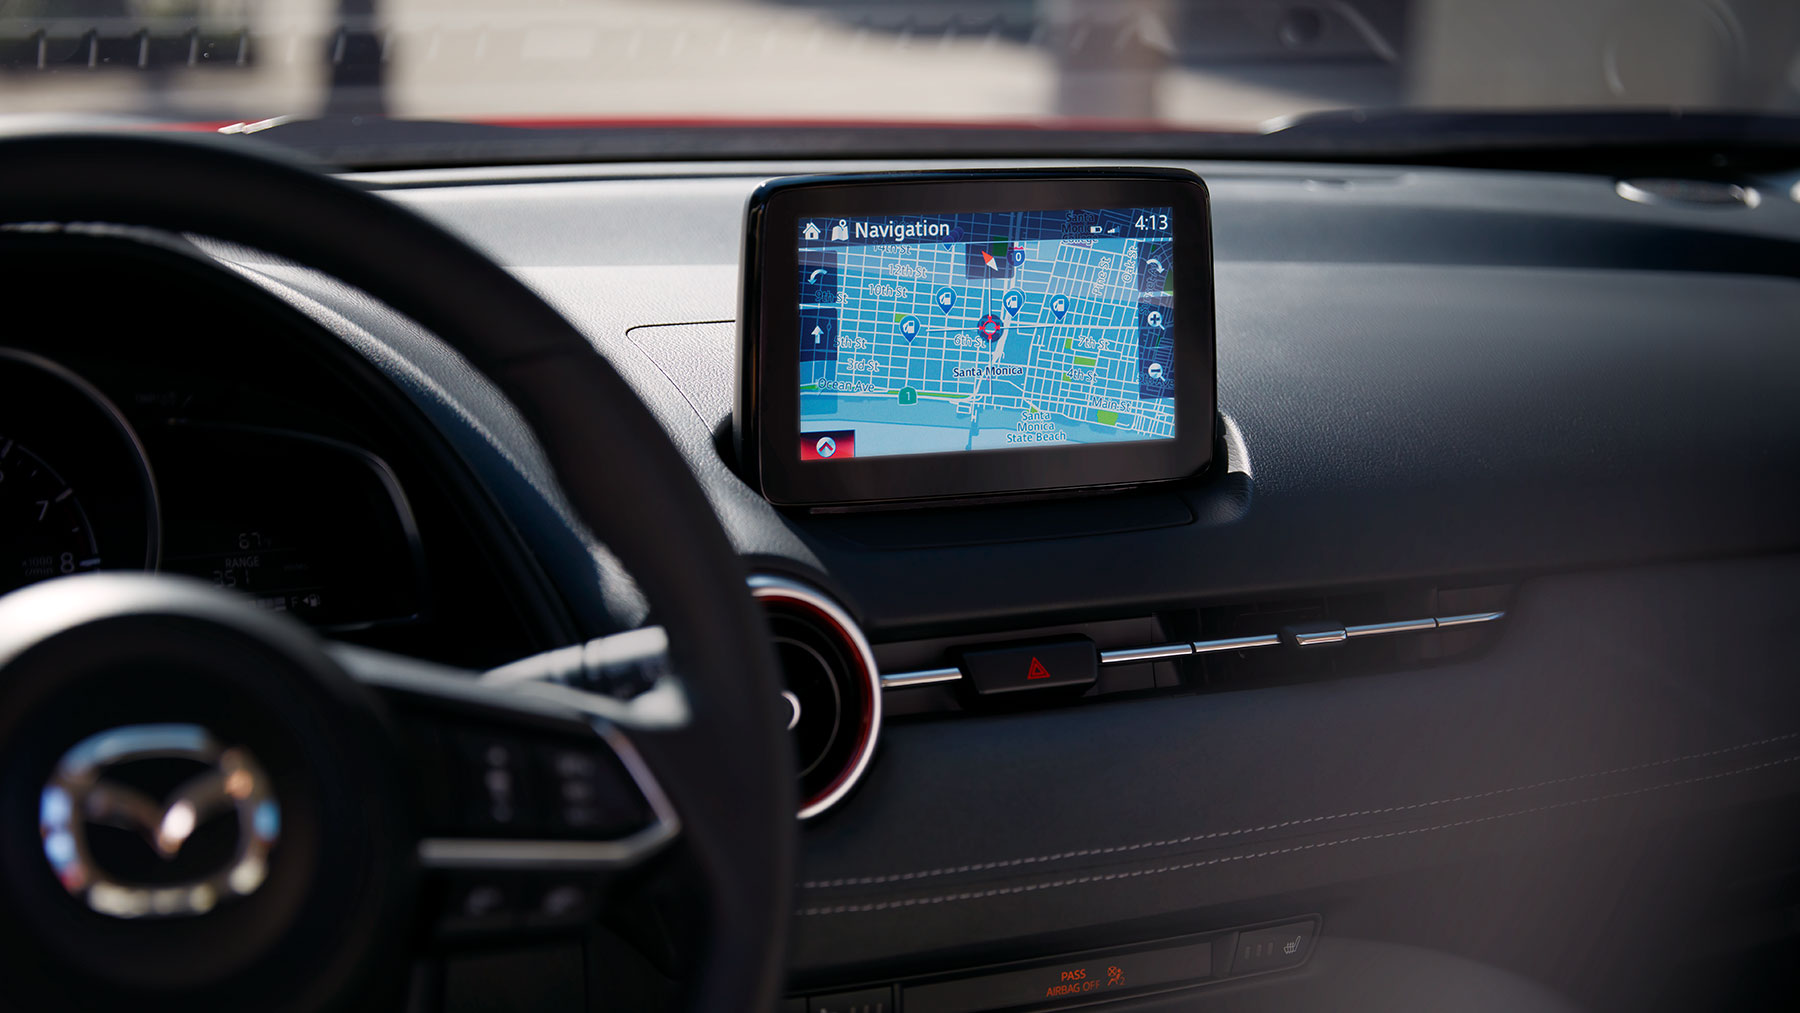 Touchscreen in the 2019 Mazda CX-3